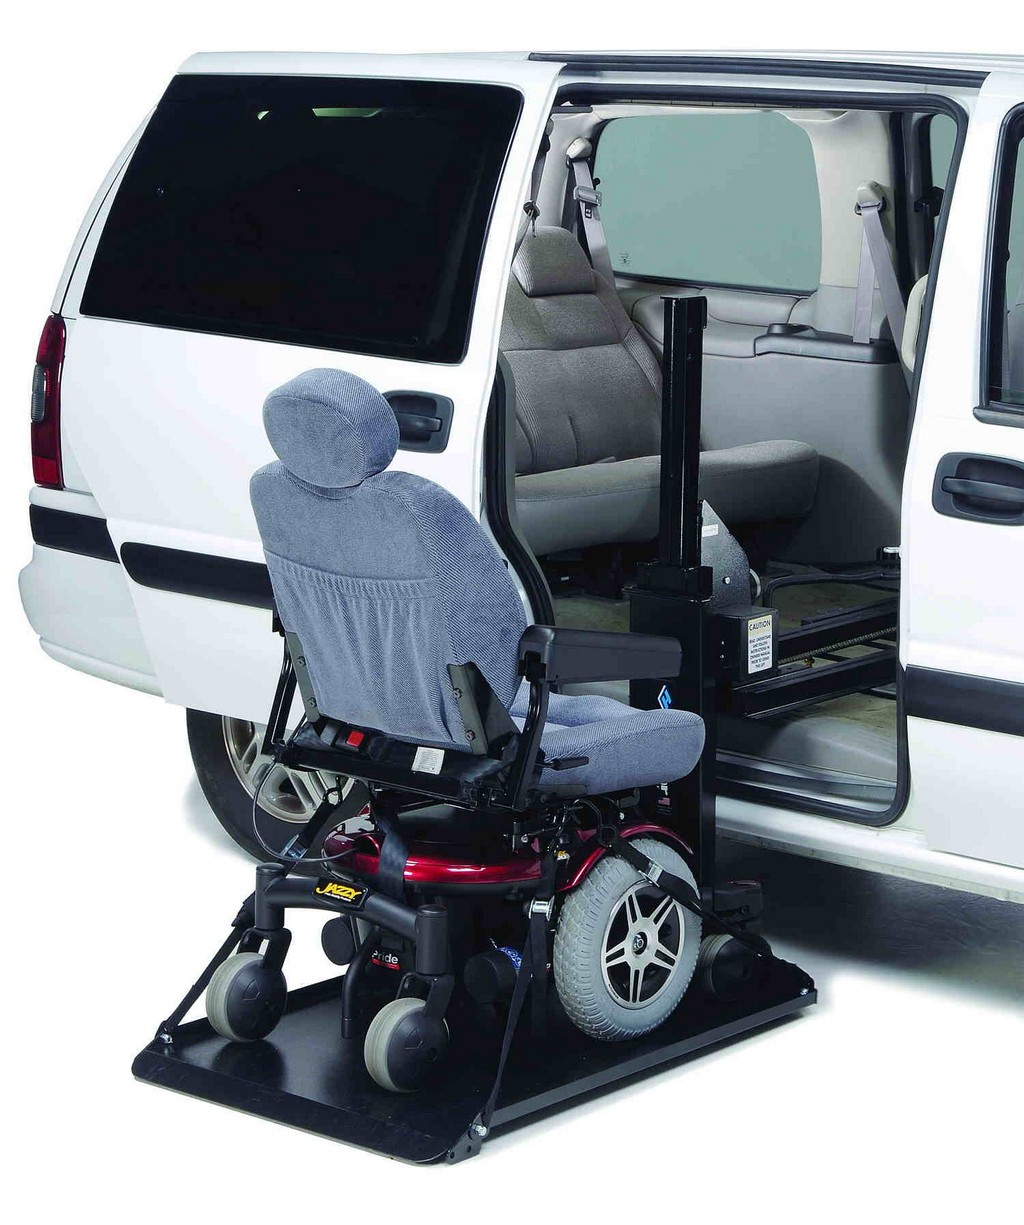 wheelchair lifts for vans, used wheel chair lifts for house, diy wheelchair lifts for motorhome, braun vangater wheelchair lift